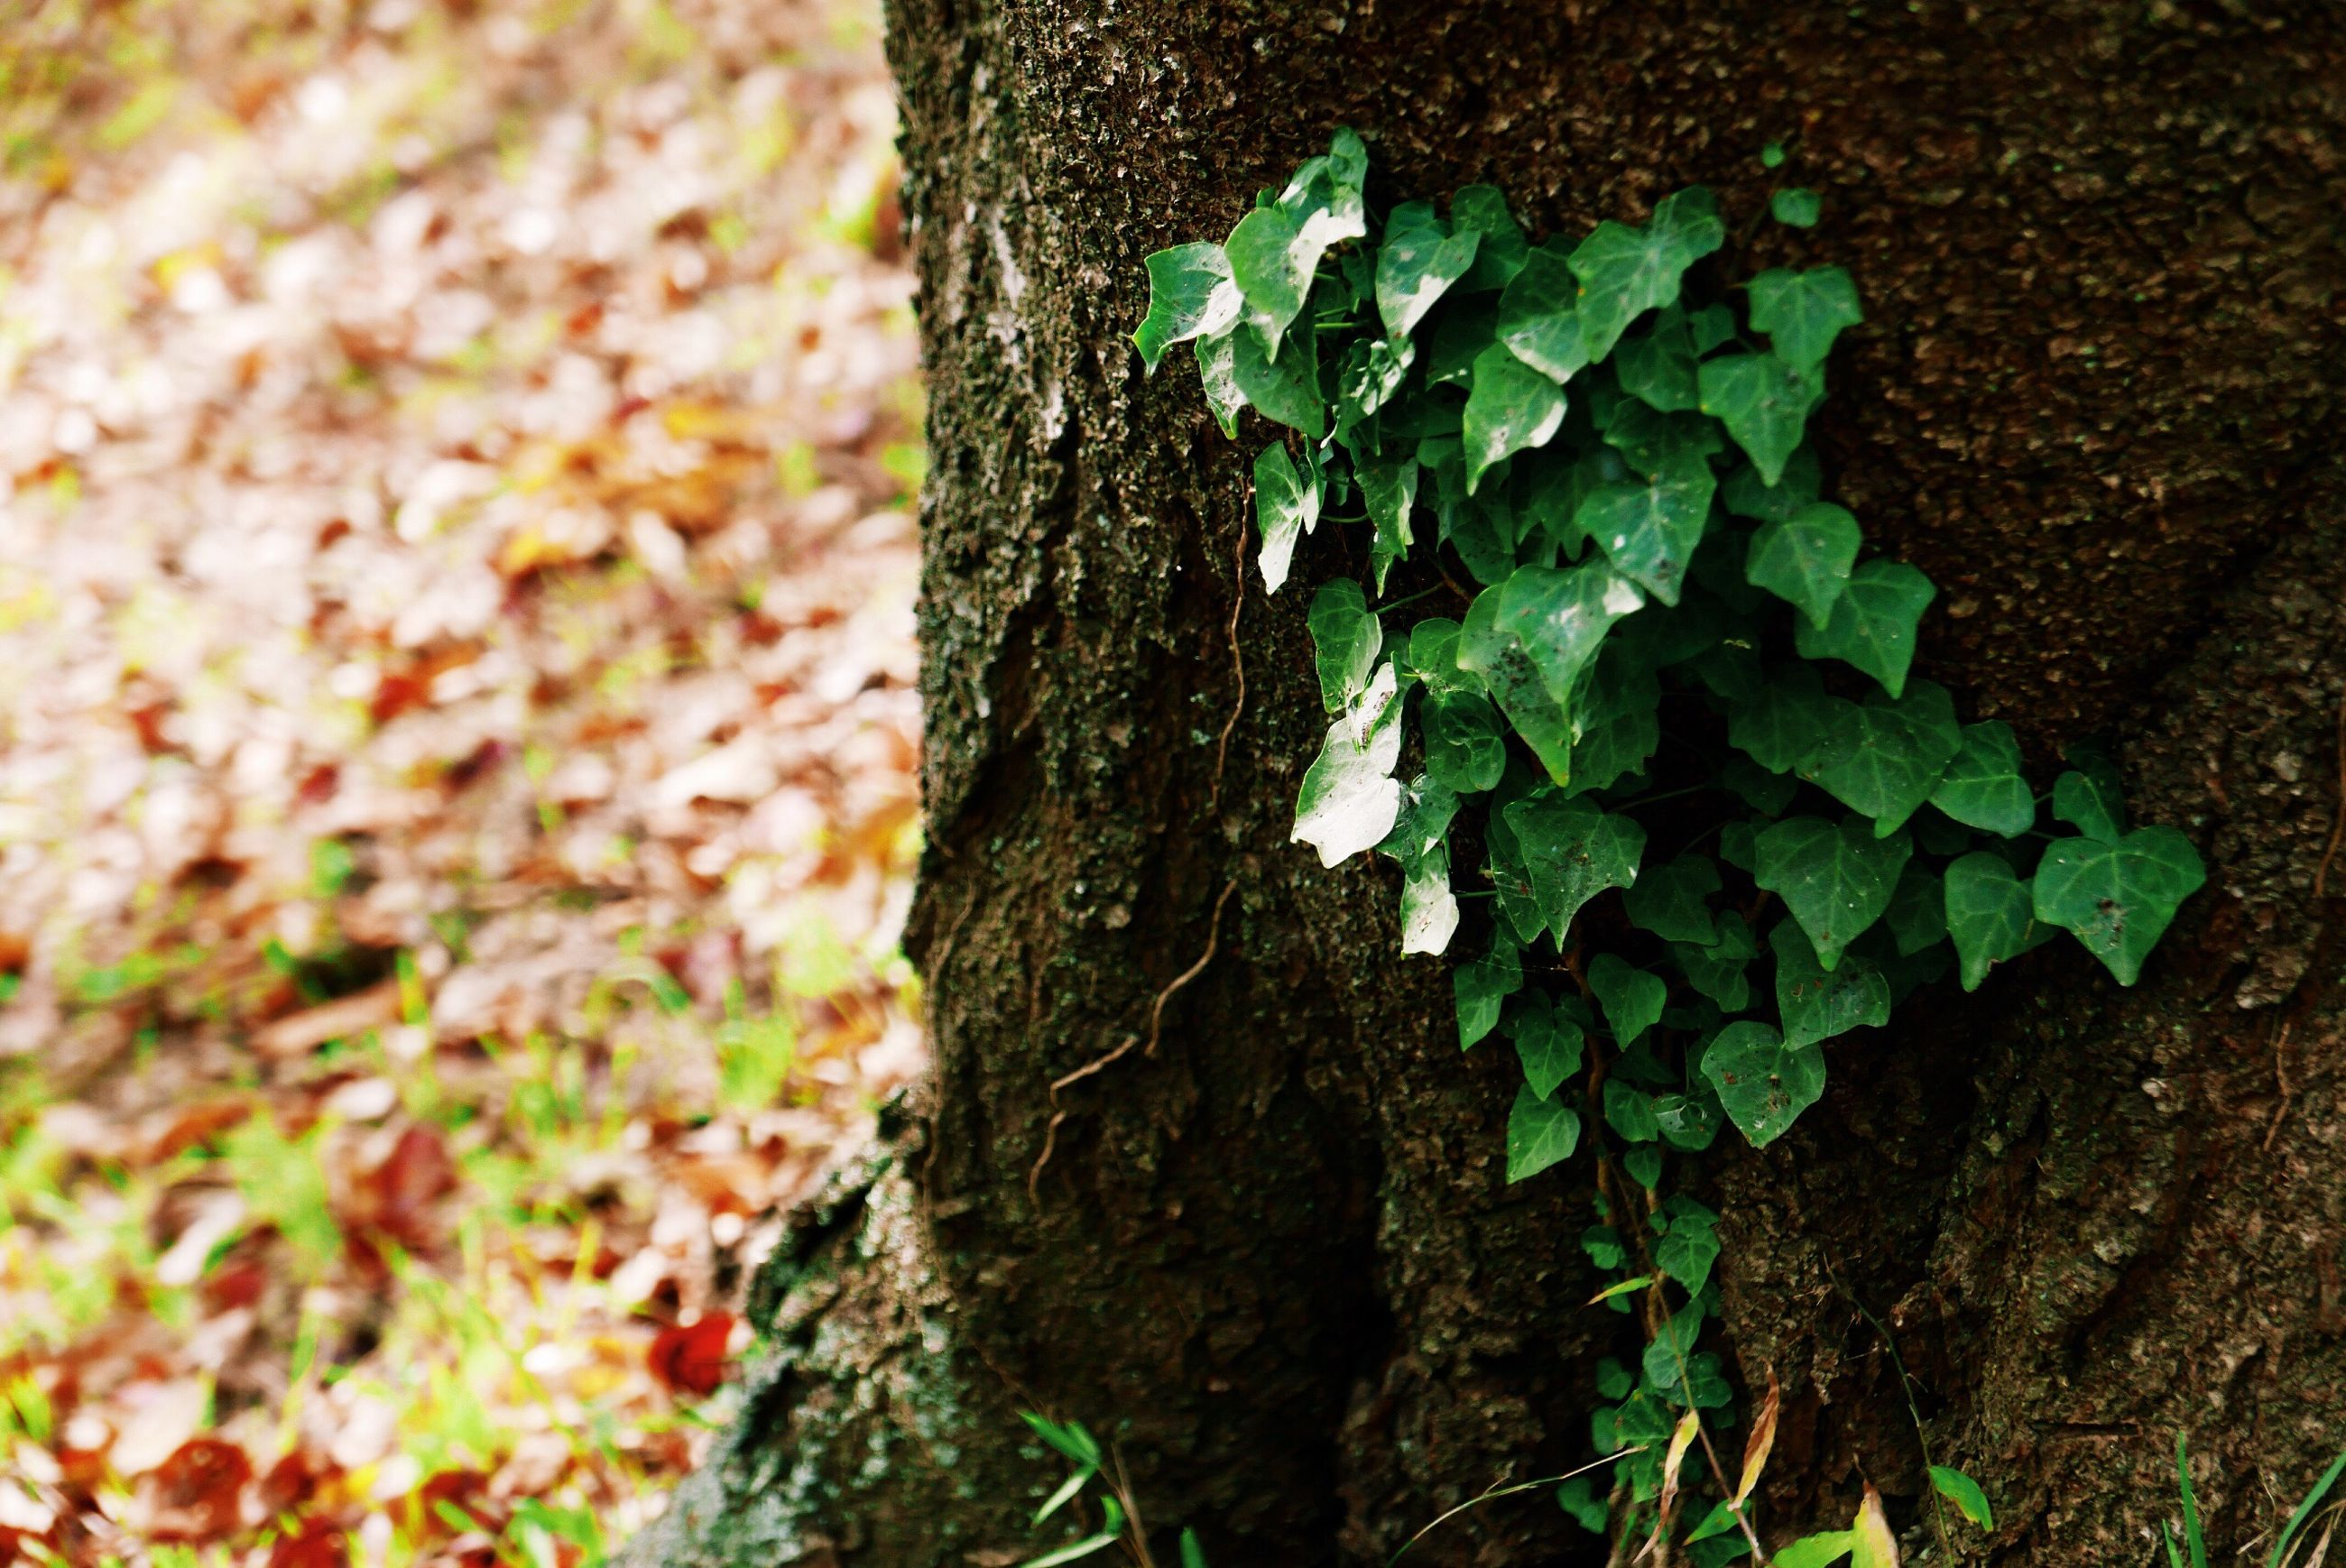 tree trunk, textured, tree, growth, nature, bark, rough, close-up, fungus, day, ivy, outdoors, no people, lichen, green color, leaf, beauty in nature, plant